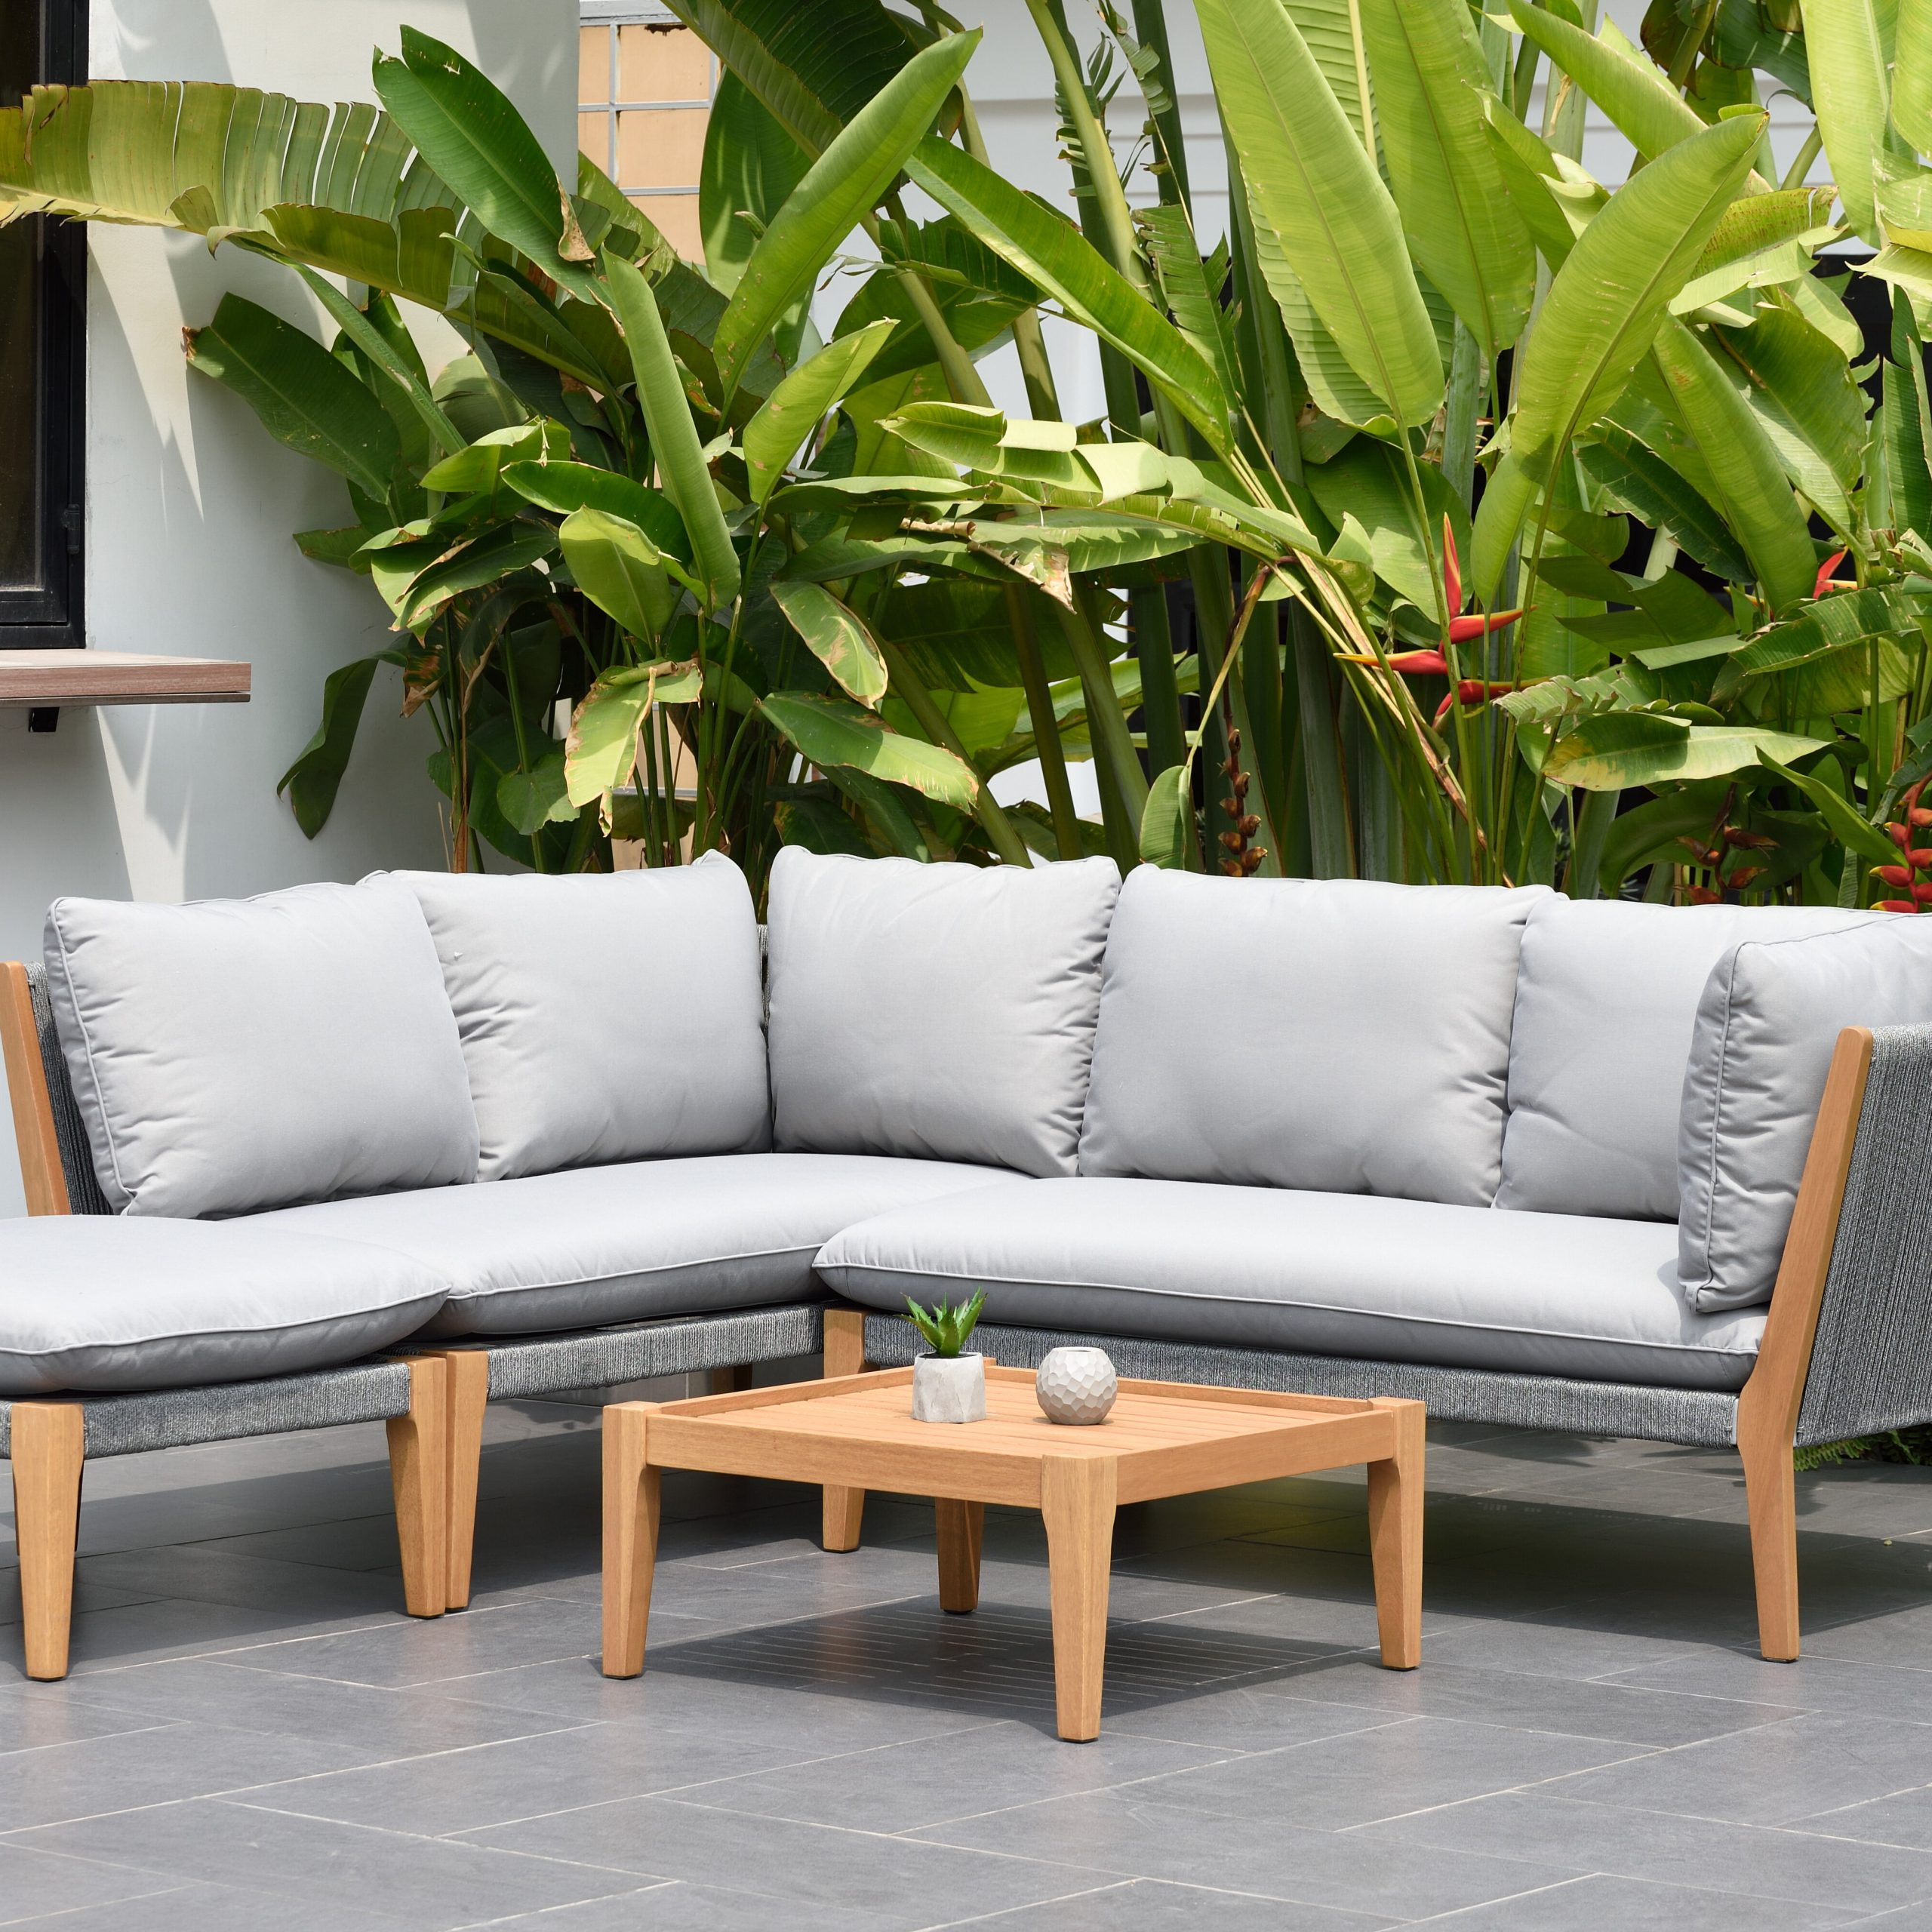 Best And Newest Olinda 4 Piece Teak Sectional Seating Group With Cushions With Olinda 3 Piece Sectionals Seating Group With Cushions (View 5 of 25)